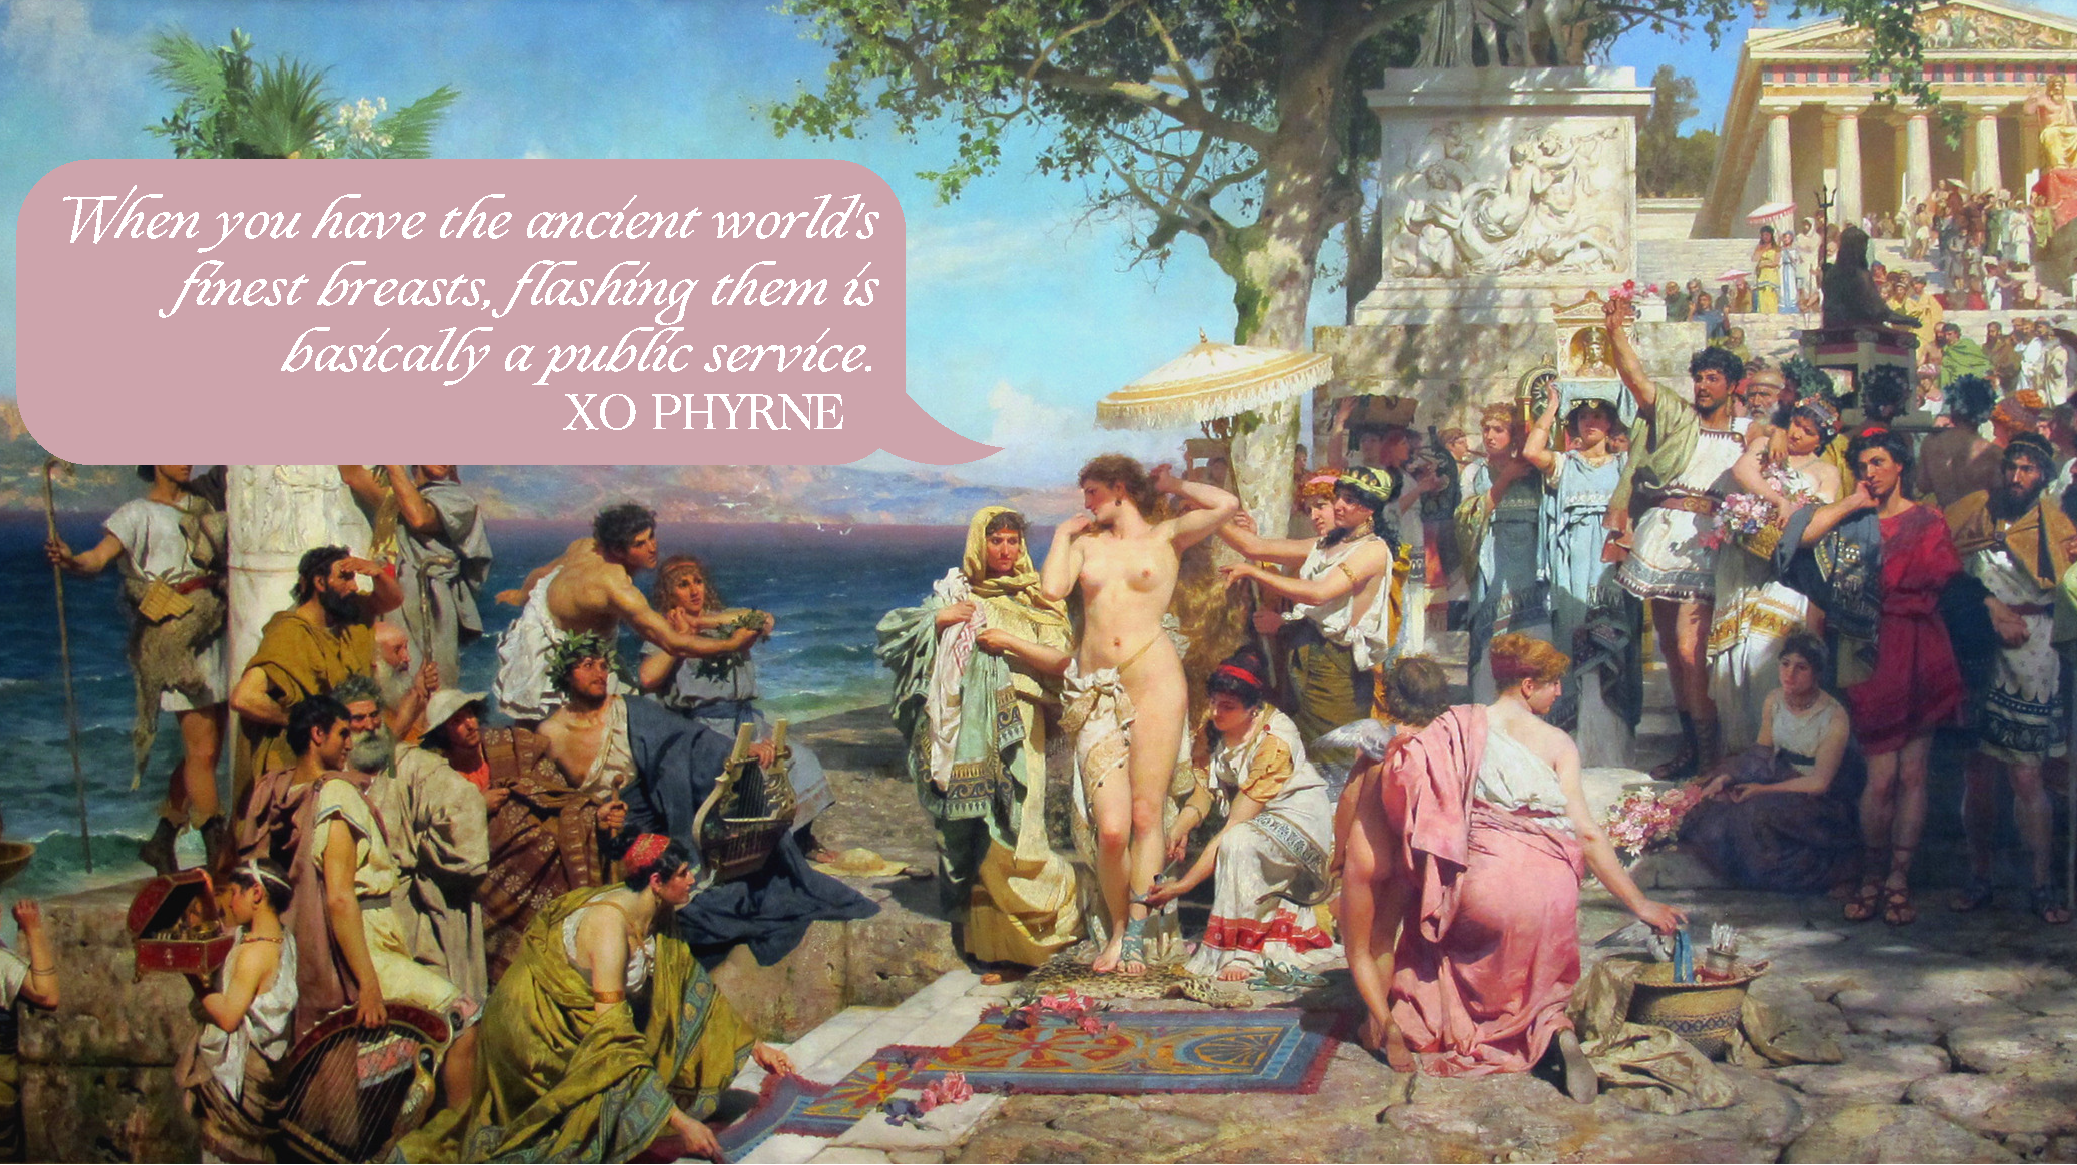 It's All Greek to Me: A Lady's Life in Ancient Greece — The